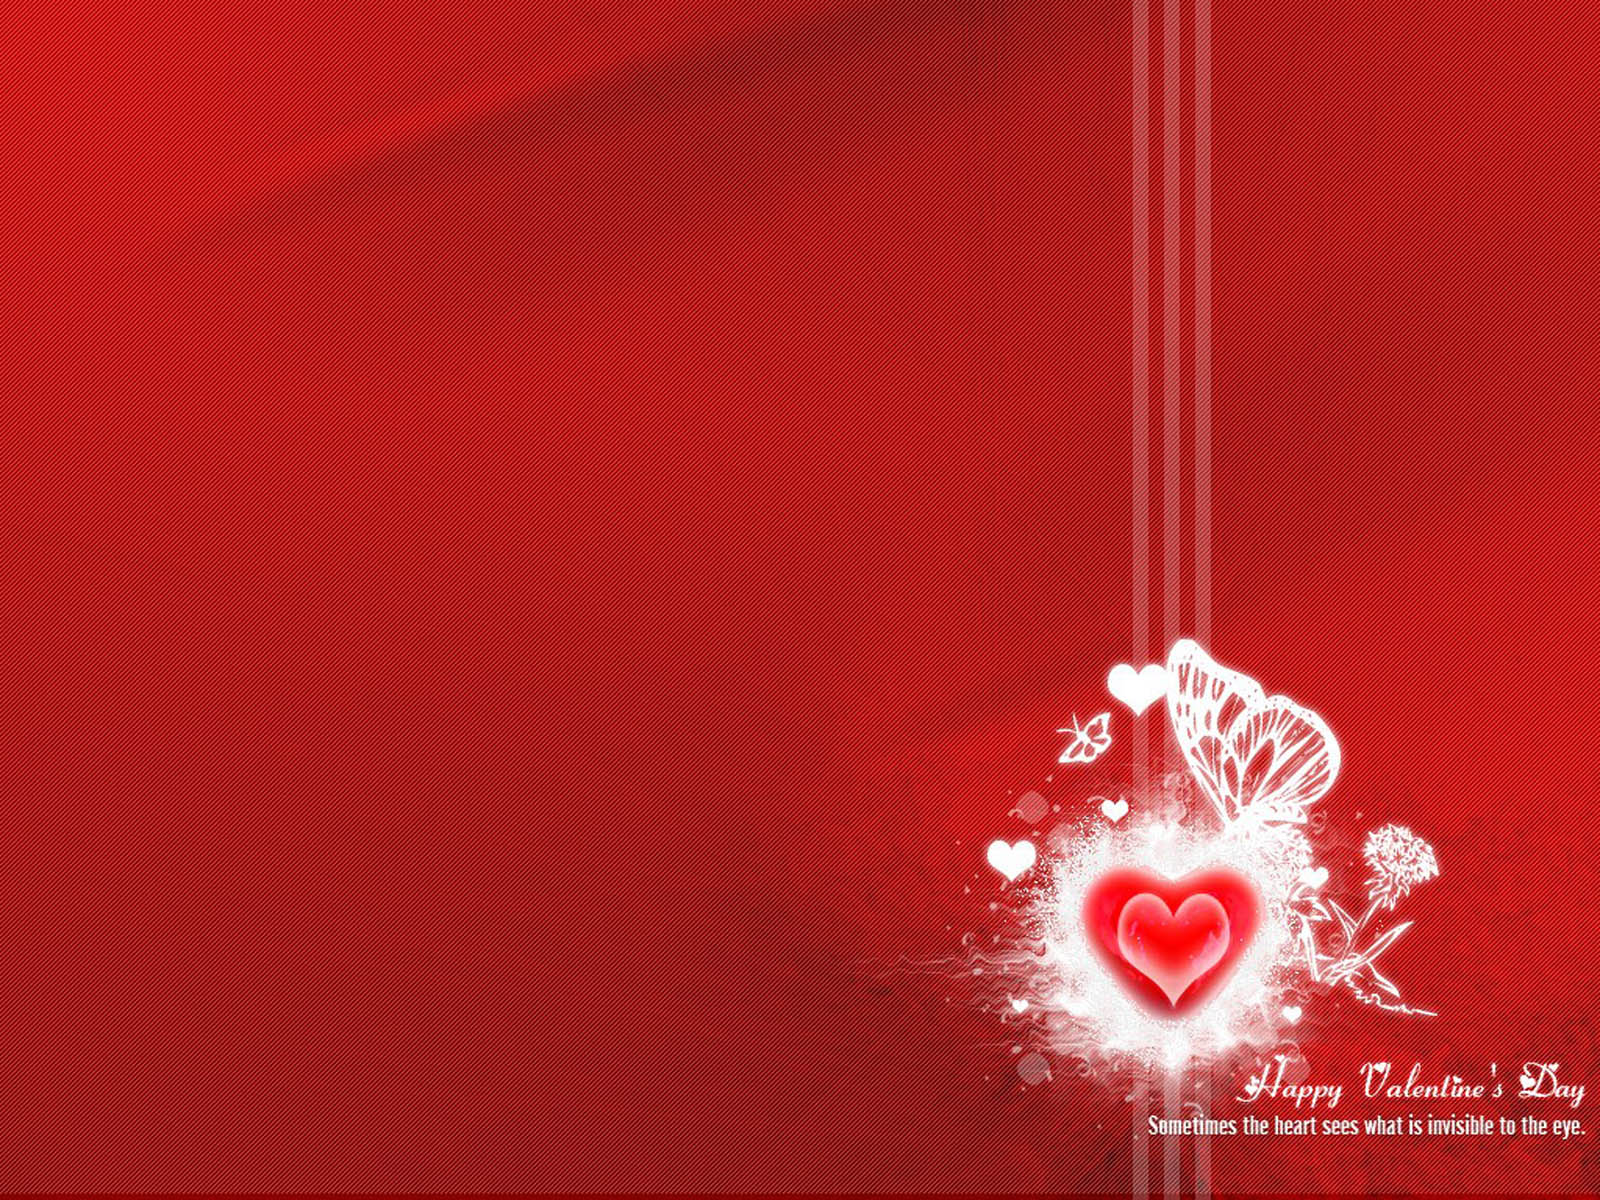 wallpapers: Valentine's Day Backgrounds